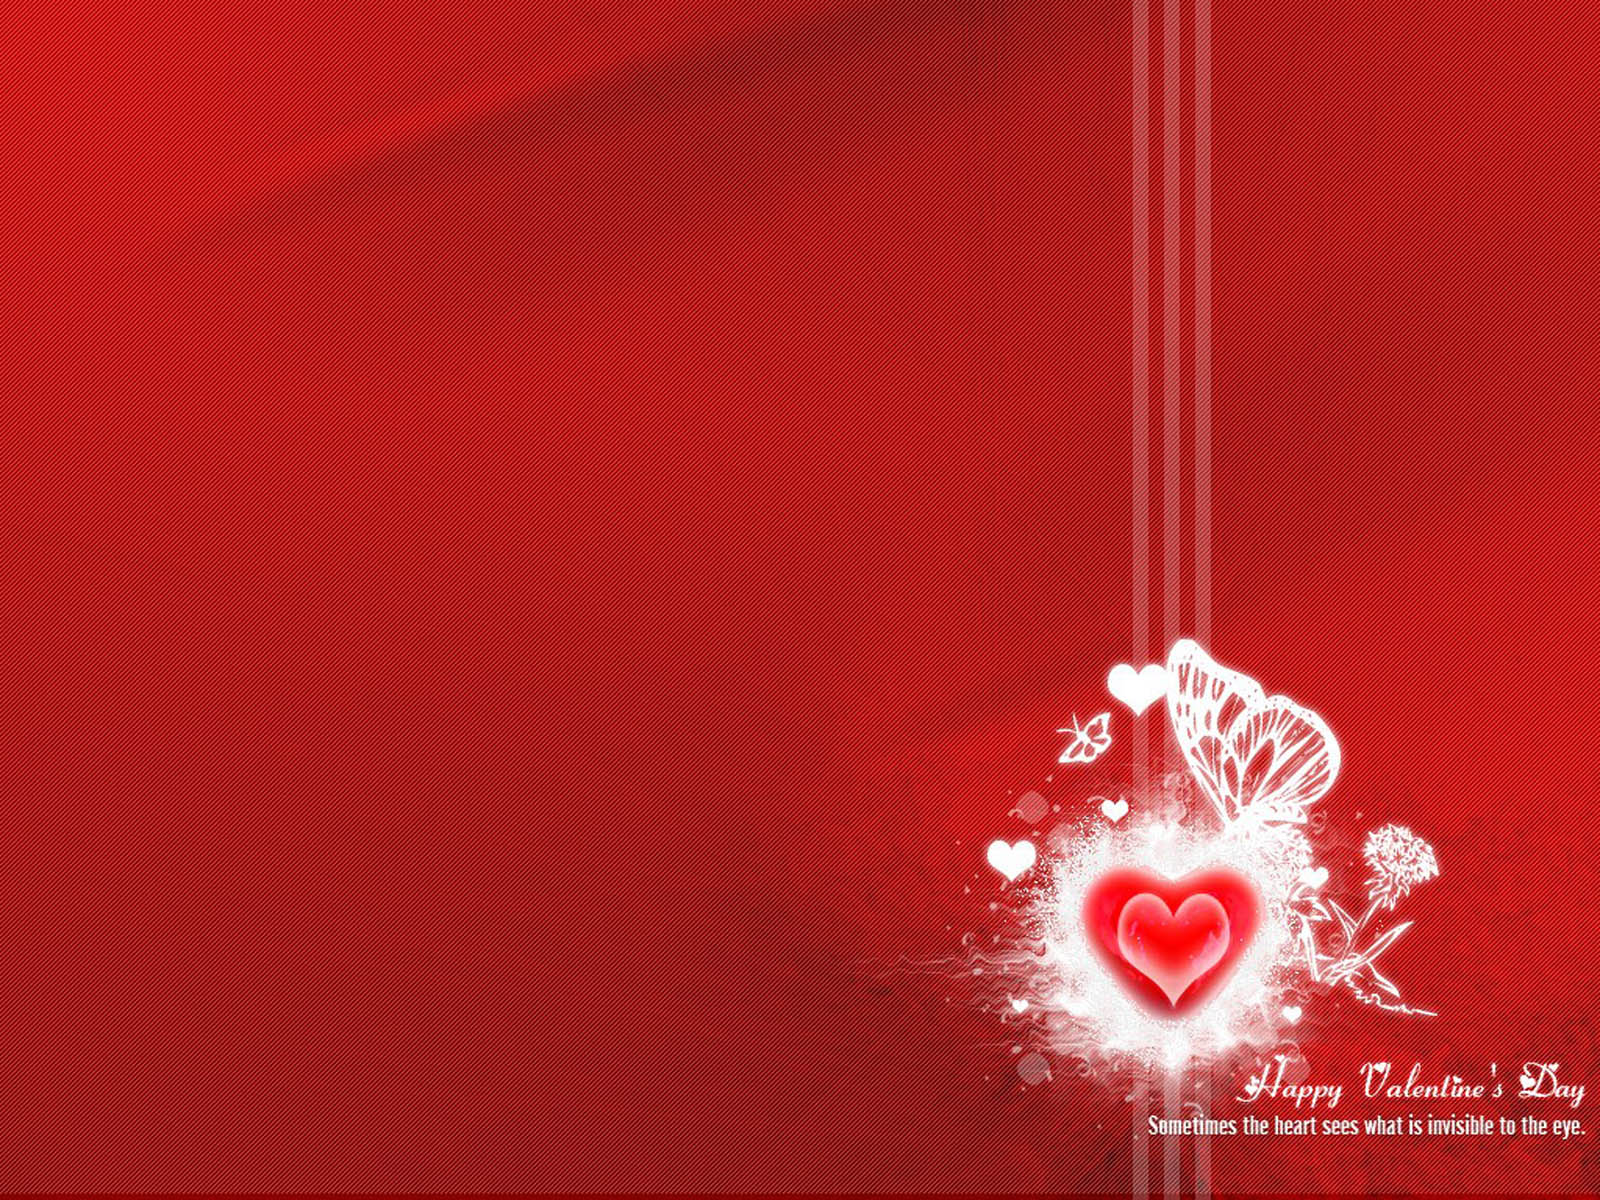 wallpapers: Valentine's Day Backgrounds